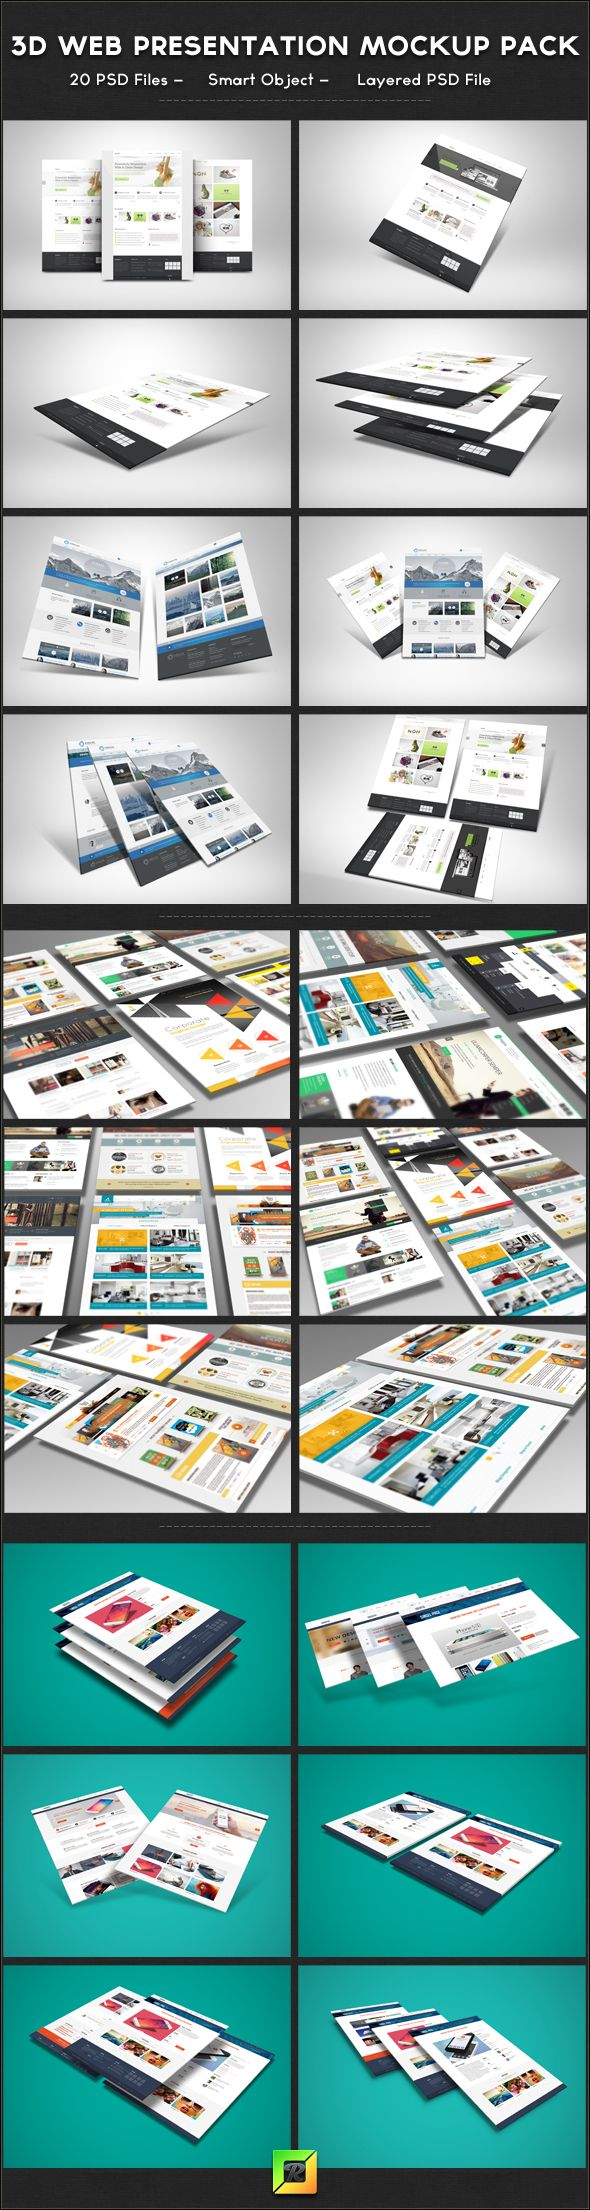 3D Web Presentation Mockup Bundle Project features:  20 PSD Files Pixel Dimension: 3000×2000 Smart Object To Edit (files help included) High Resolution: 300 DPI Layered PSD Files You can Change the Background Color Images used not included in Zip File